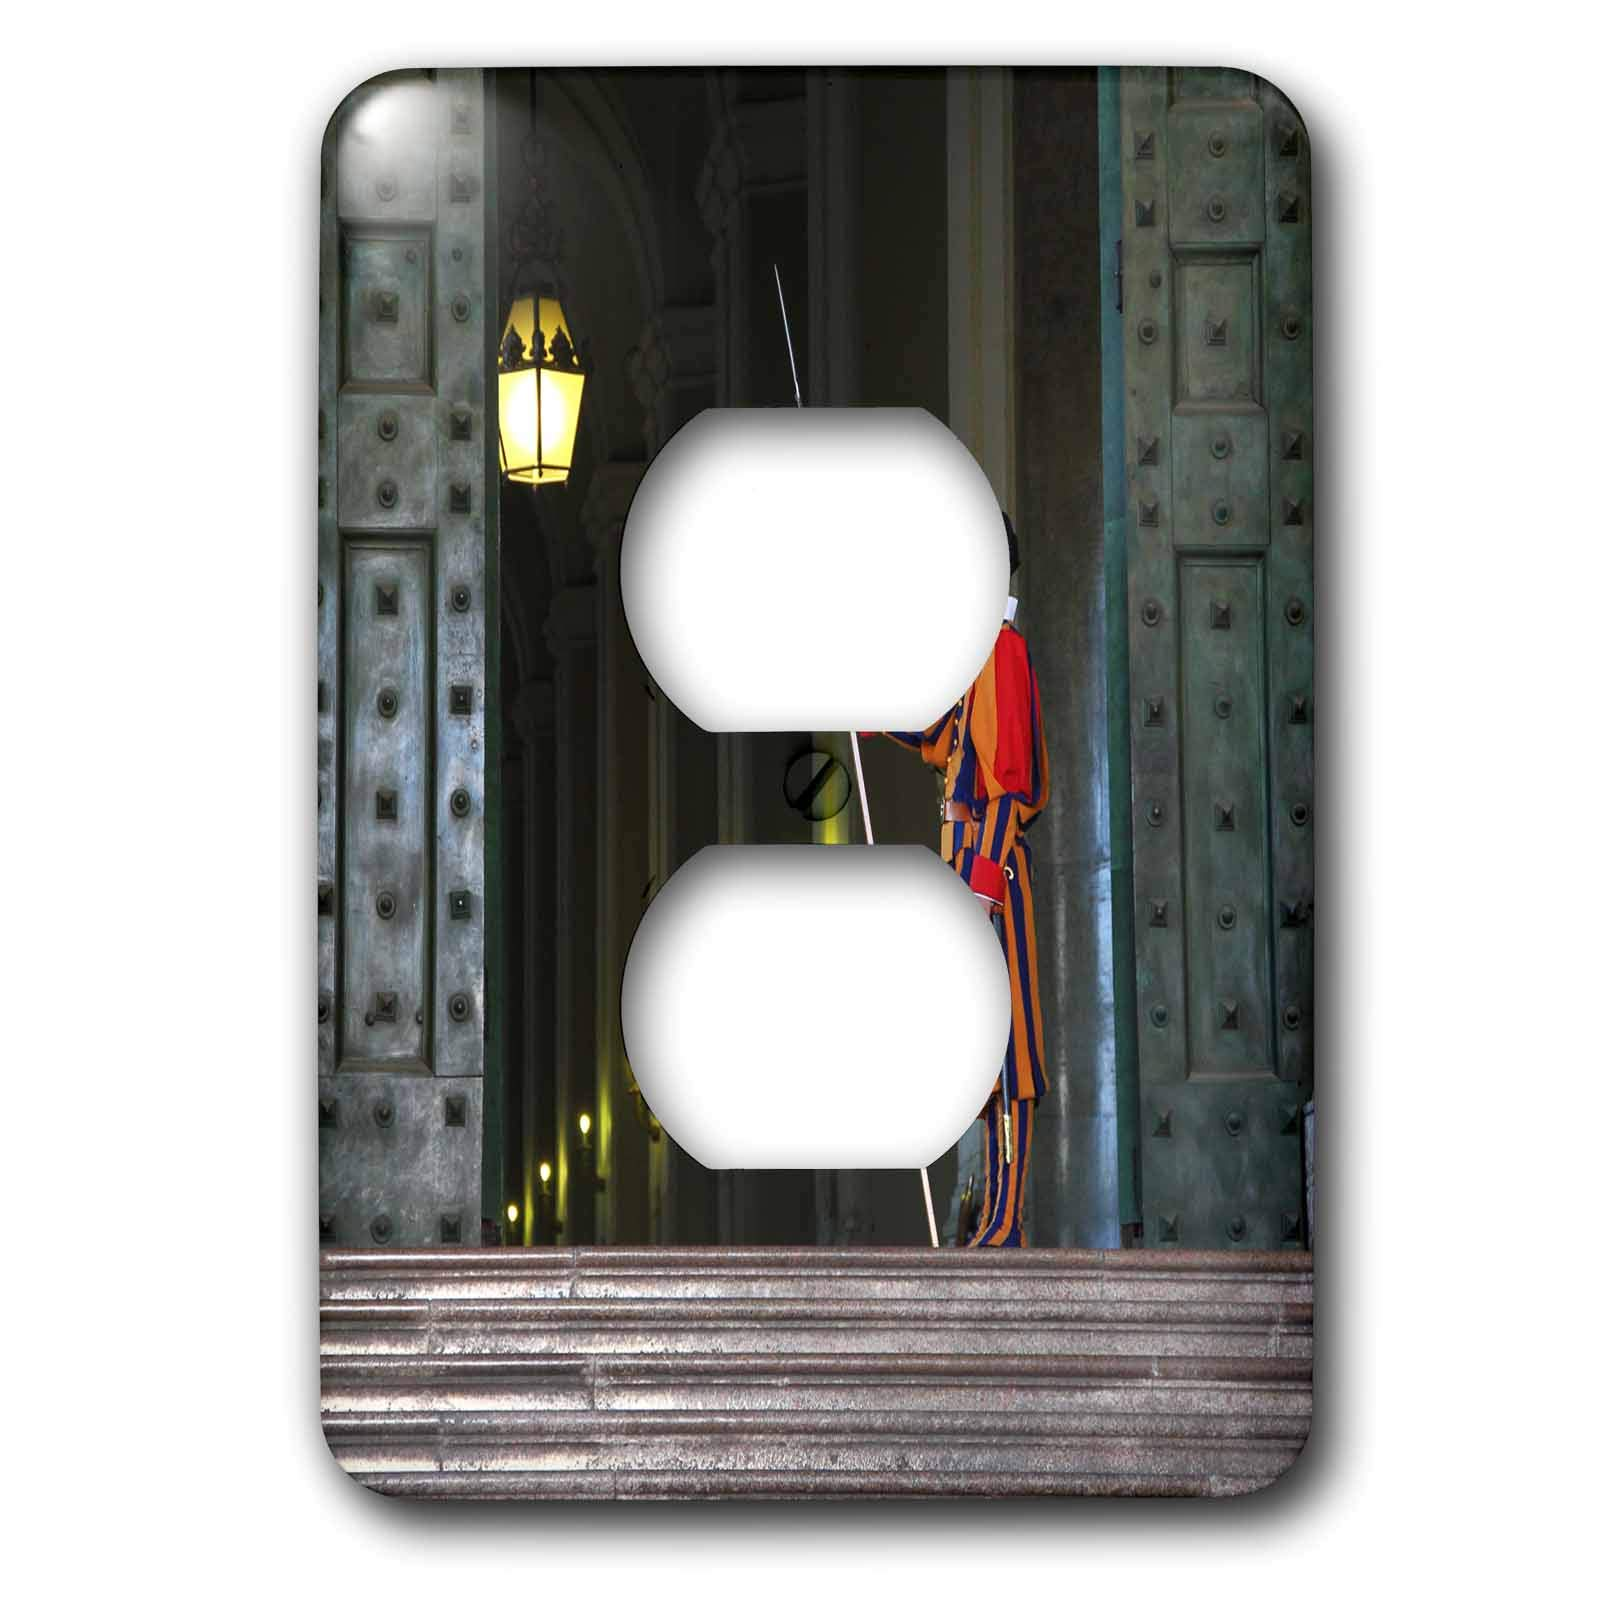 3dRose Elysium Photography - Portrait - Swiss guard on duty, Vatican City - Light Switch Covers - 2 plug outlet cover (lsp_289614_6) by 3dRose